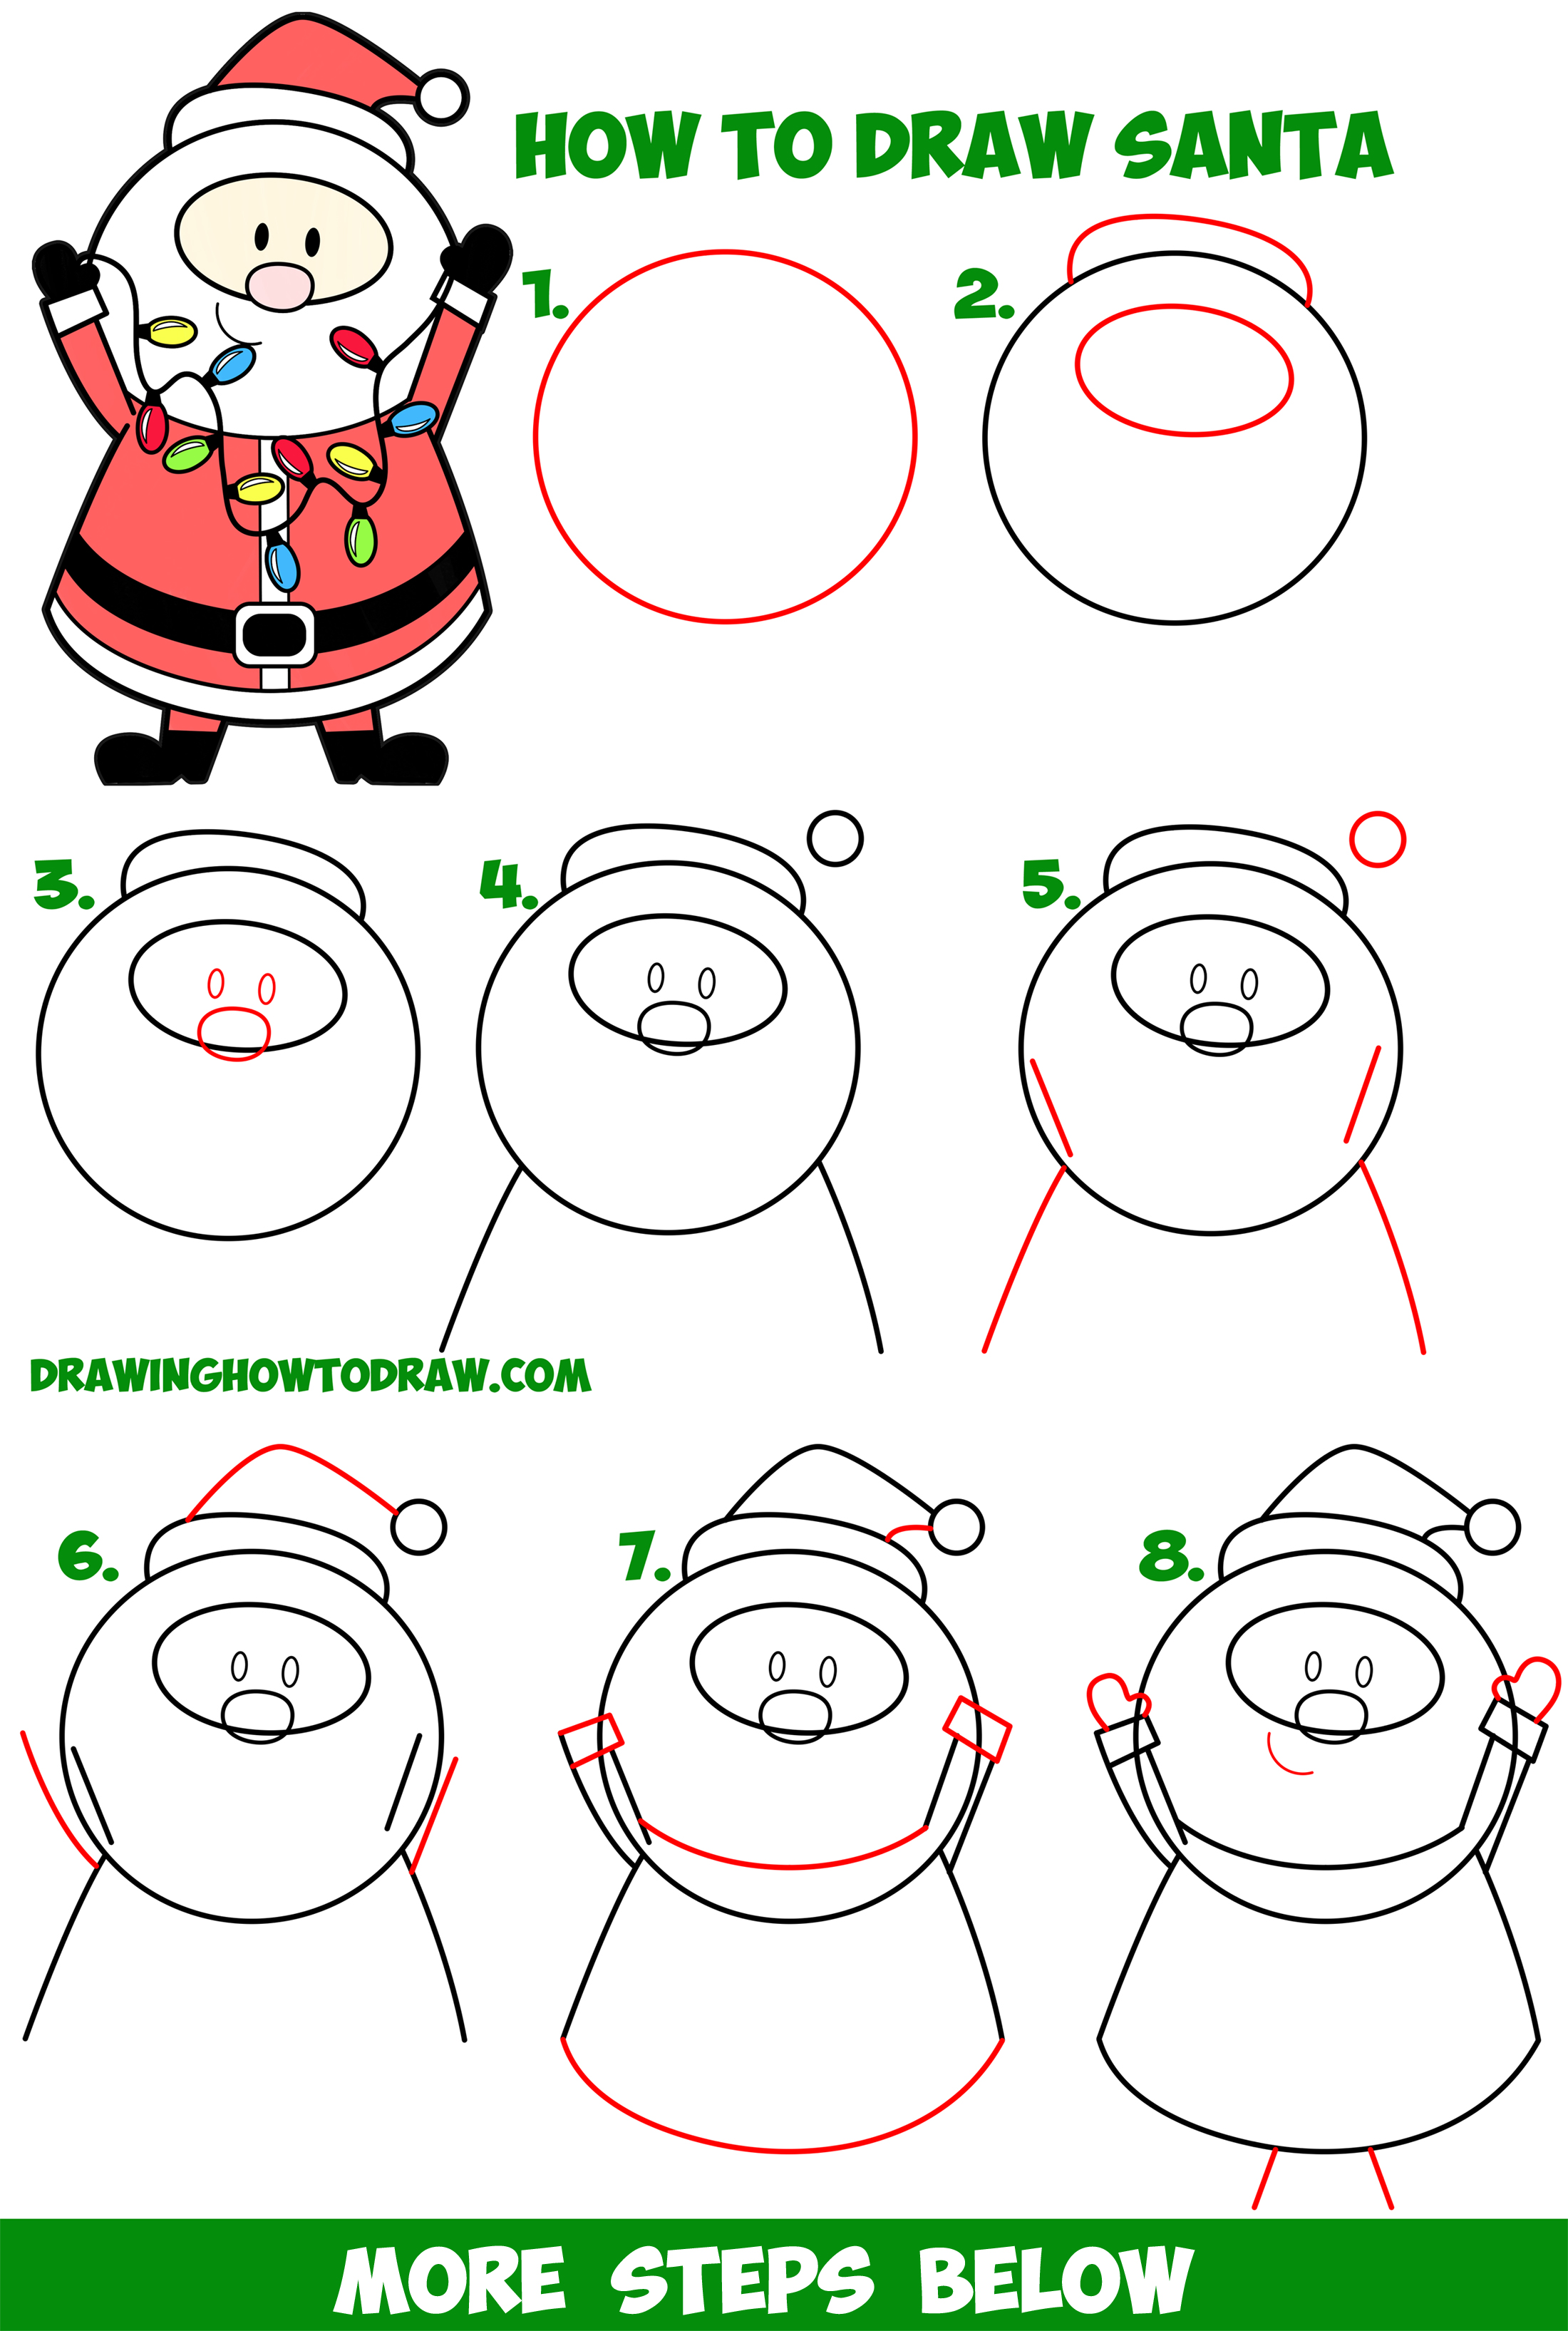 Learn How to Draw Santa Claus Holding Christmas Lights Easy Step by Step Drawing Tutorial for Kids